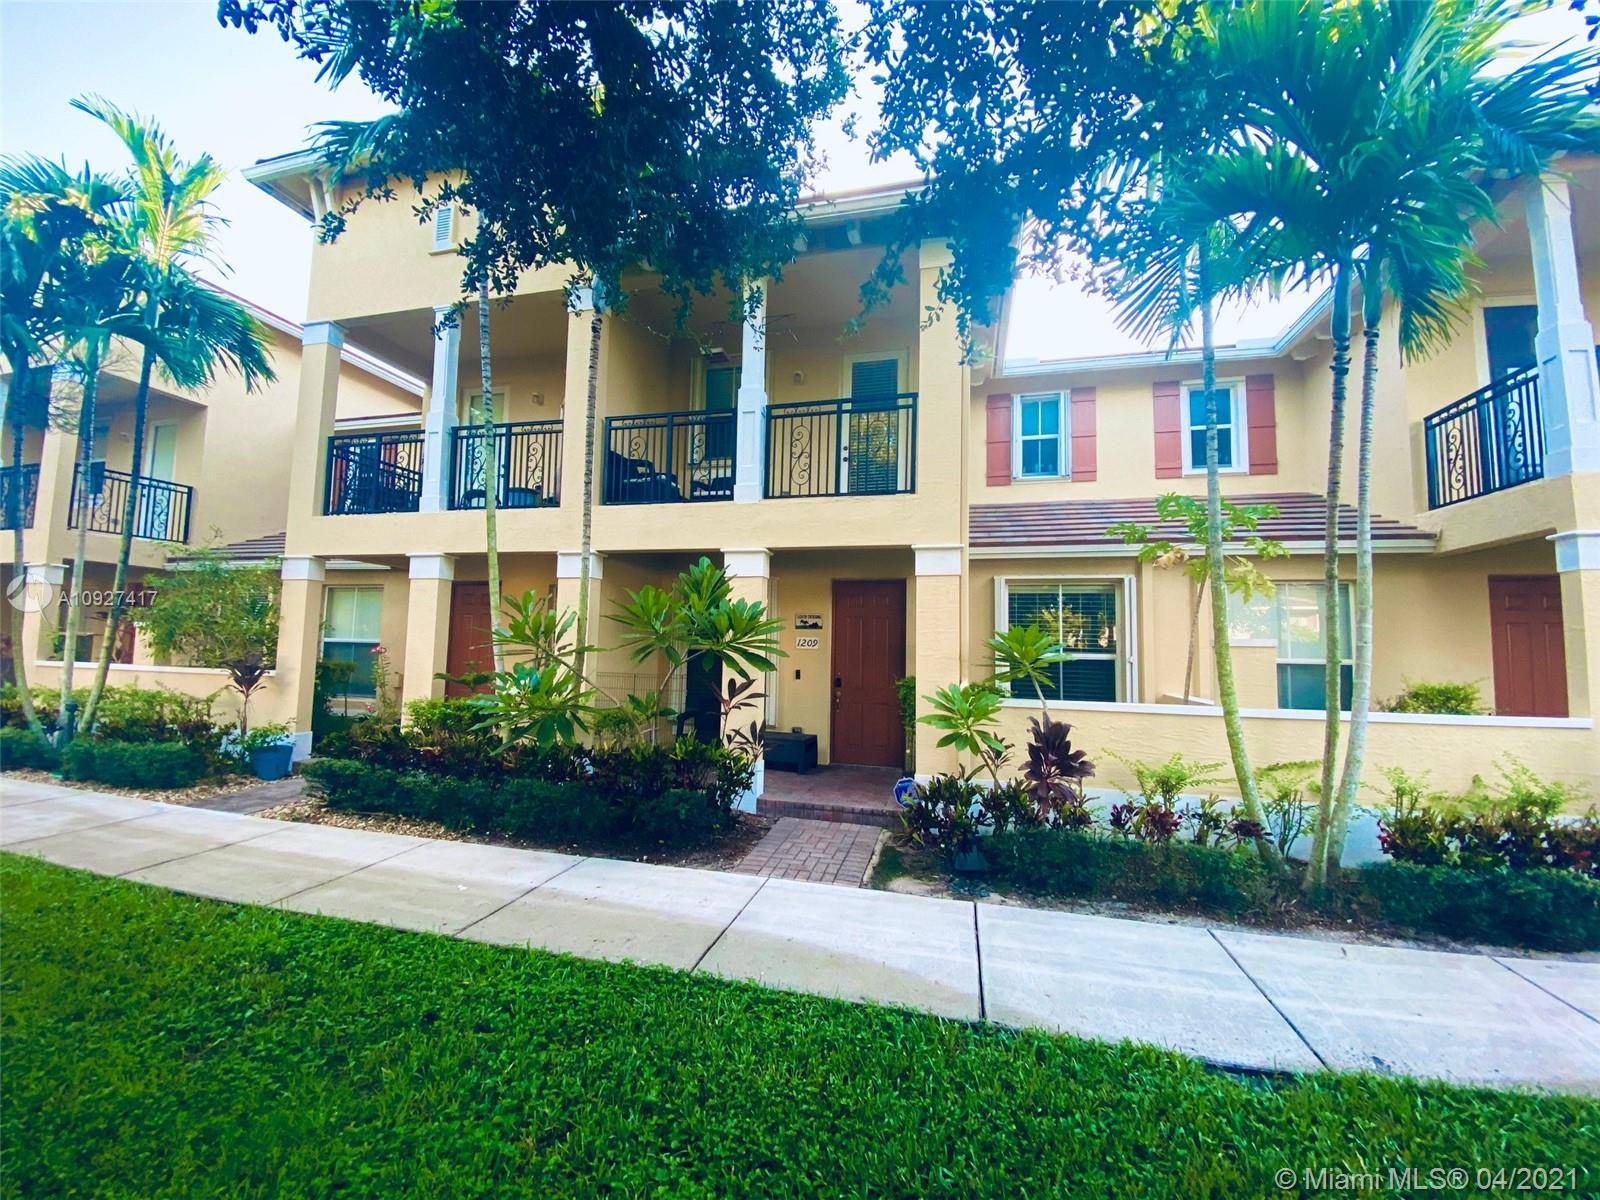 Beautiful Updated townhouse for sale in Paloma Lakes.Unit is featuring big open kitchen with quartz counter top, black stainless steel appliances,tile flooring .Unit has accordion shutters.Build in closets , walk in closets,updated bathroom.A/C 3 years old, washer dryer newer.